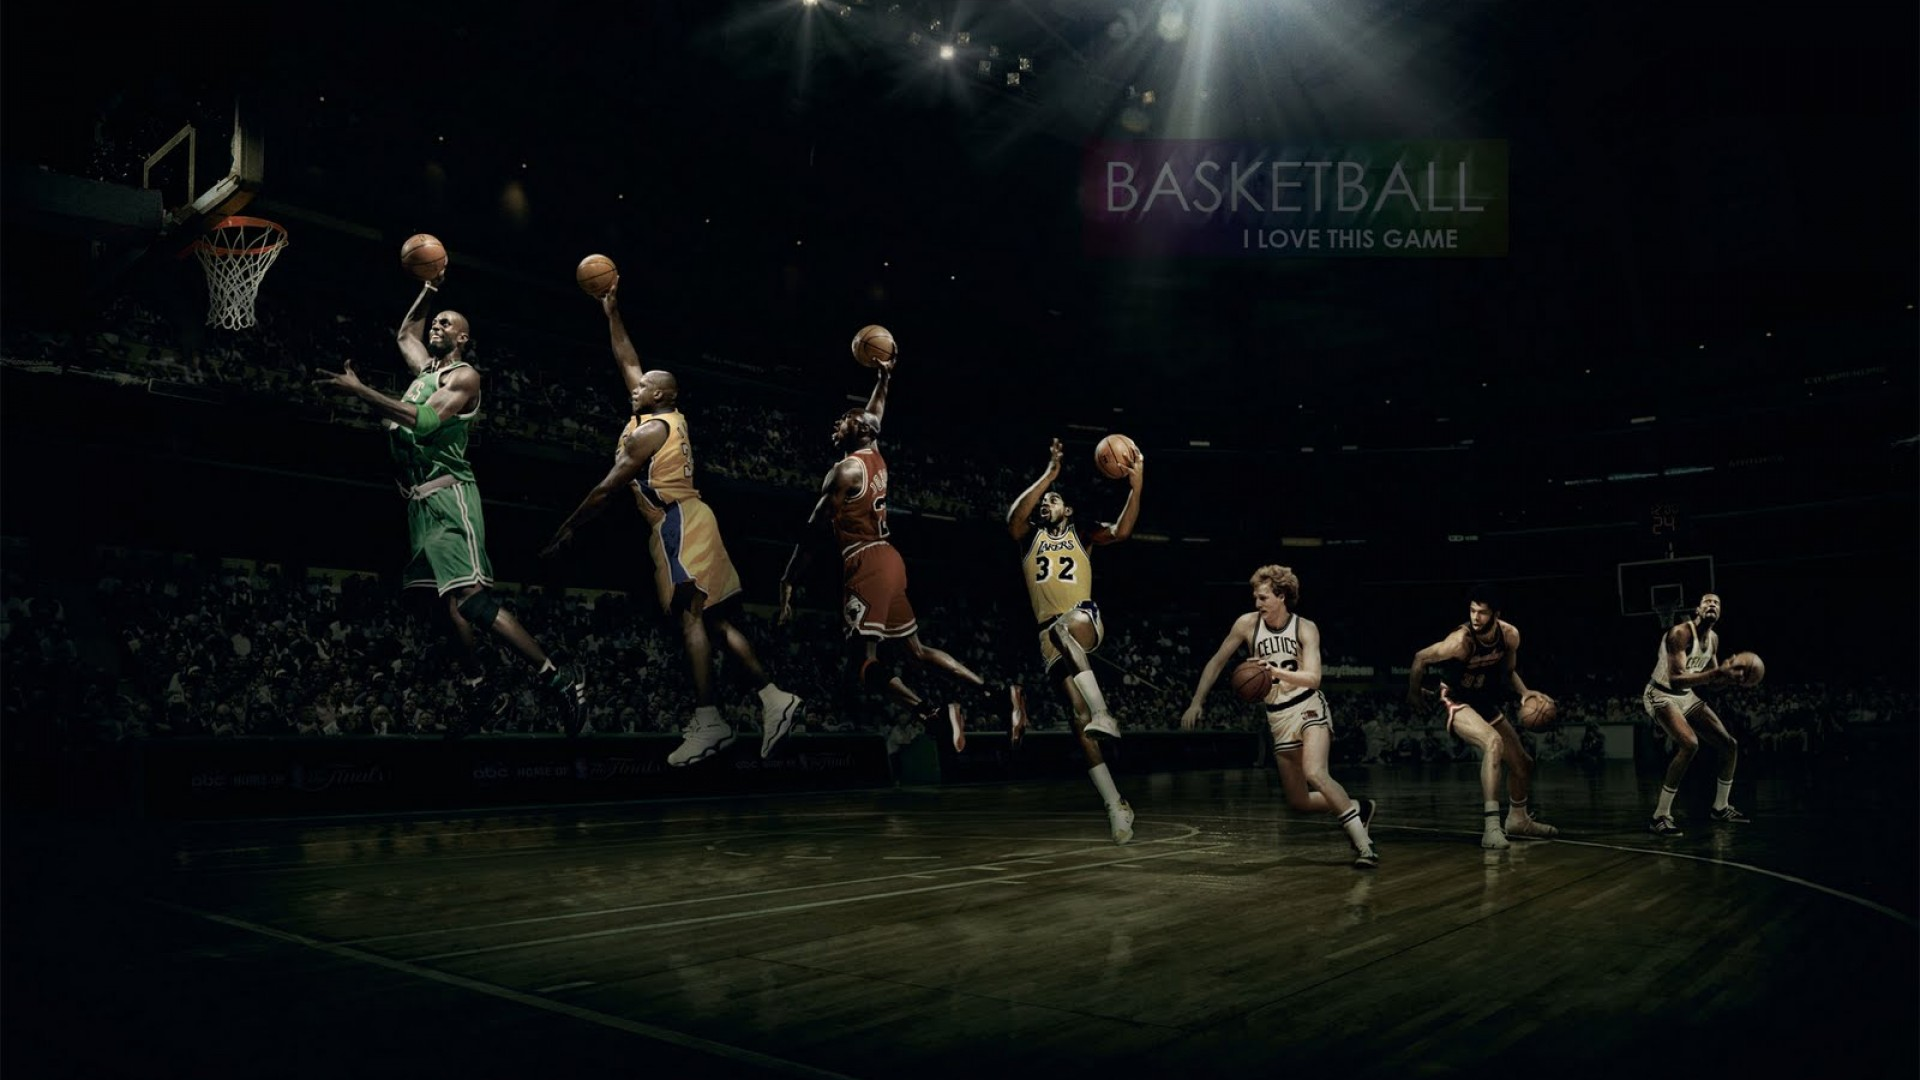 Wallpaper Of Basketball Posted By Ryan Thompson